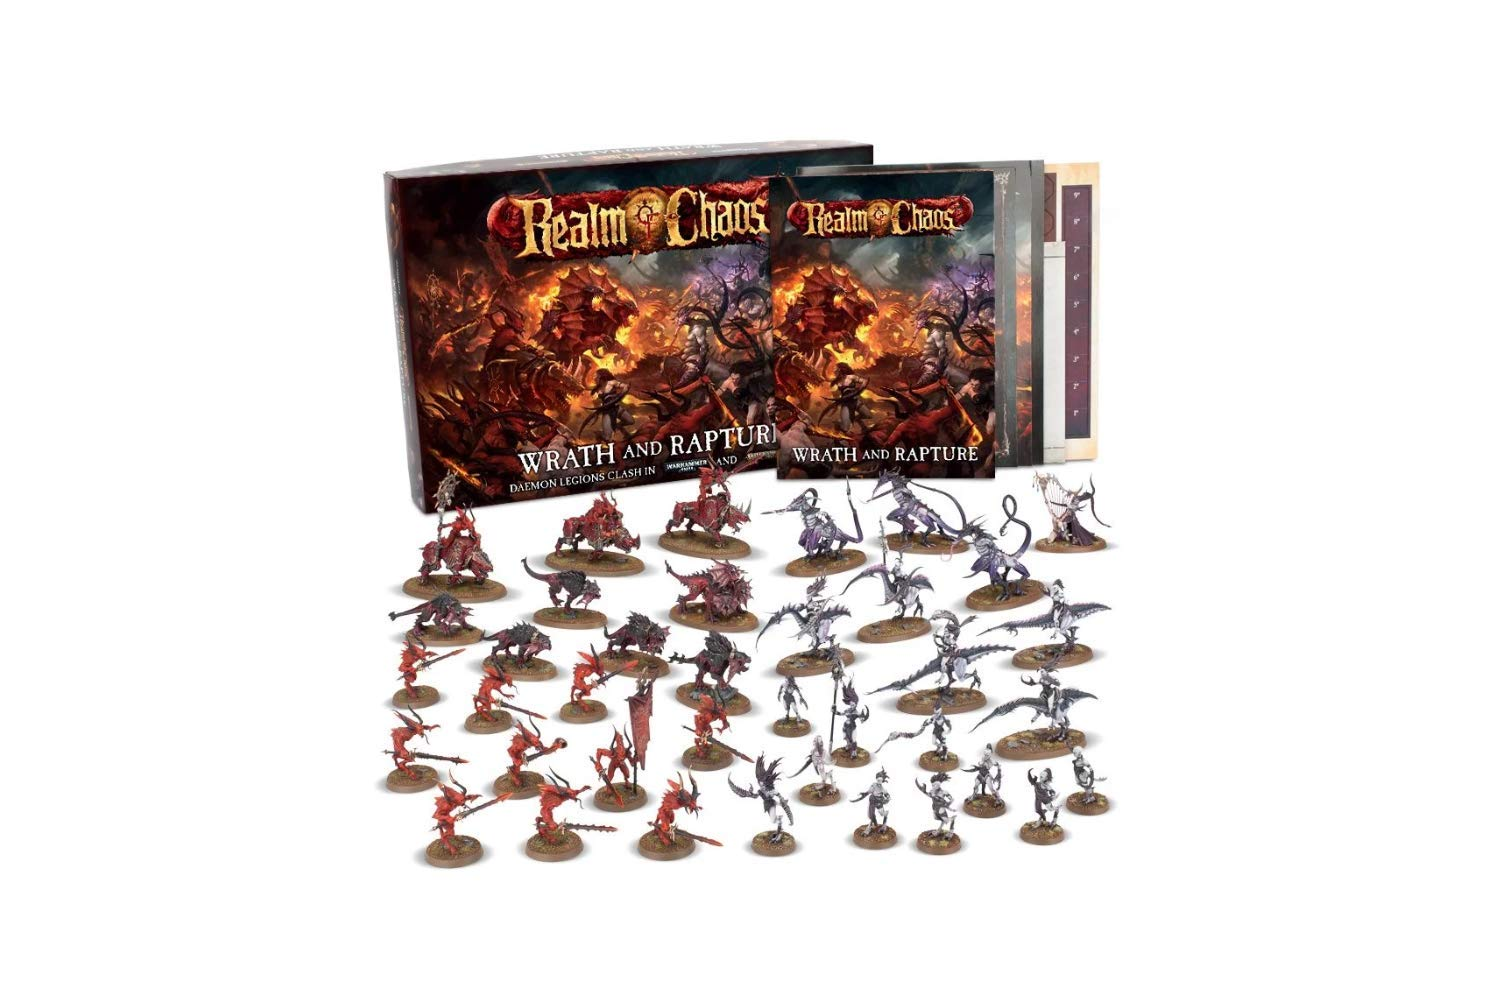 English Realm of Chaos Wrath and Rapture